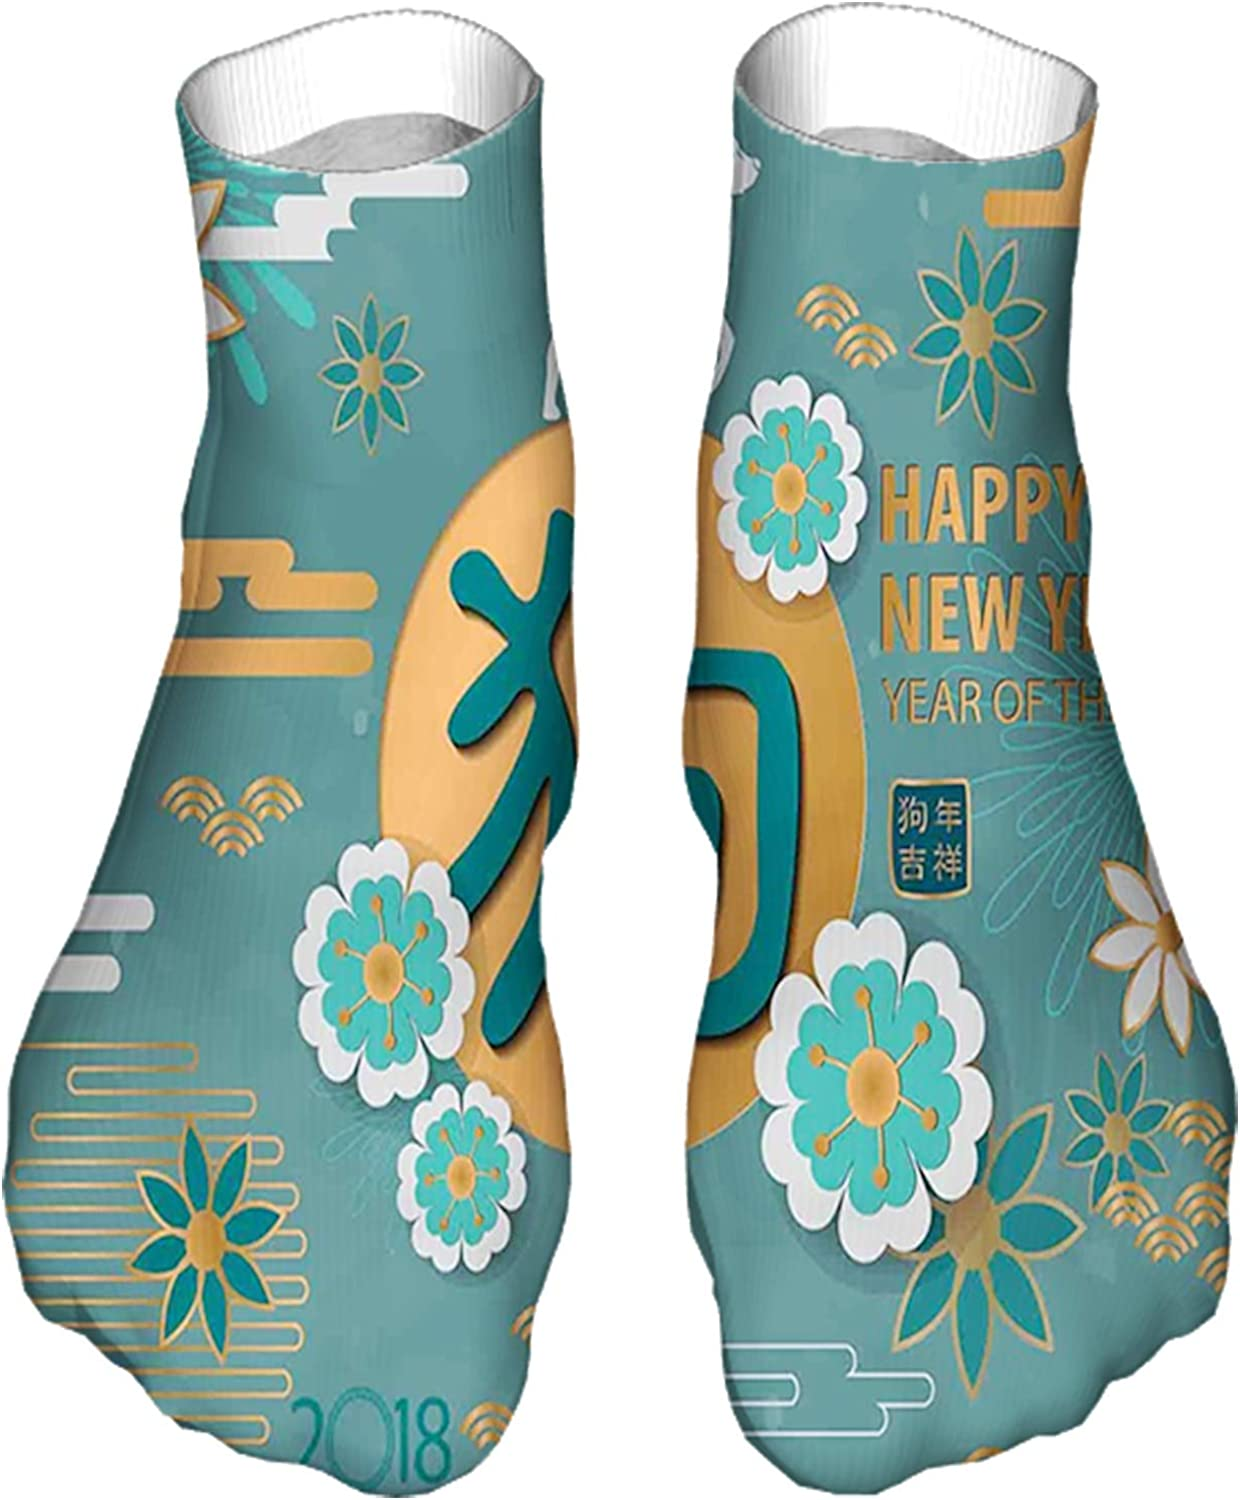 Women's Colorful Patterned Unisex Low Cut/No Show Socks,Lunar Year Illustration with Flowers and Circles Chinese